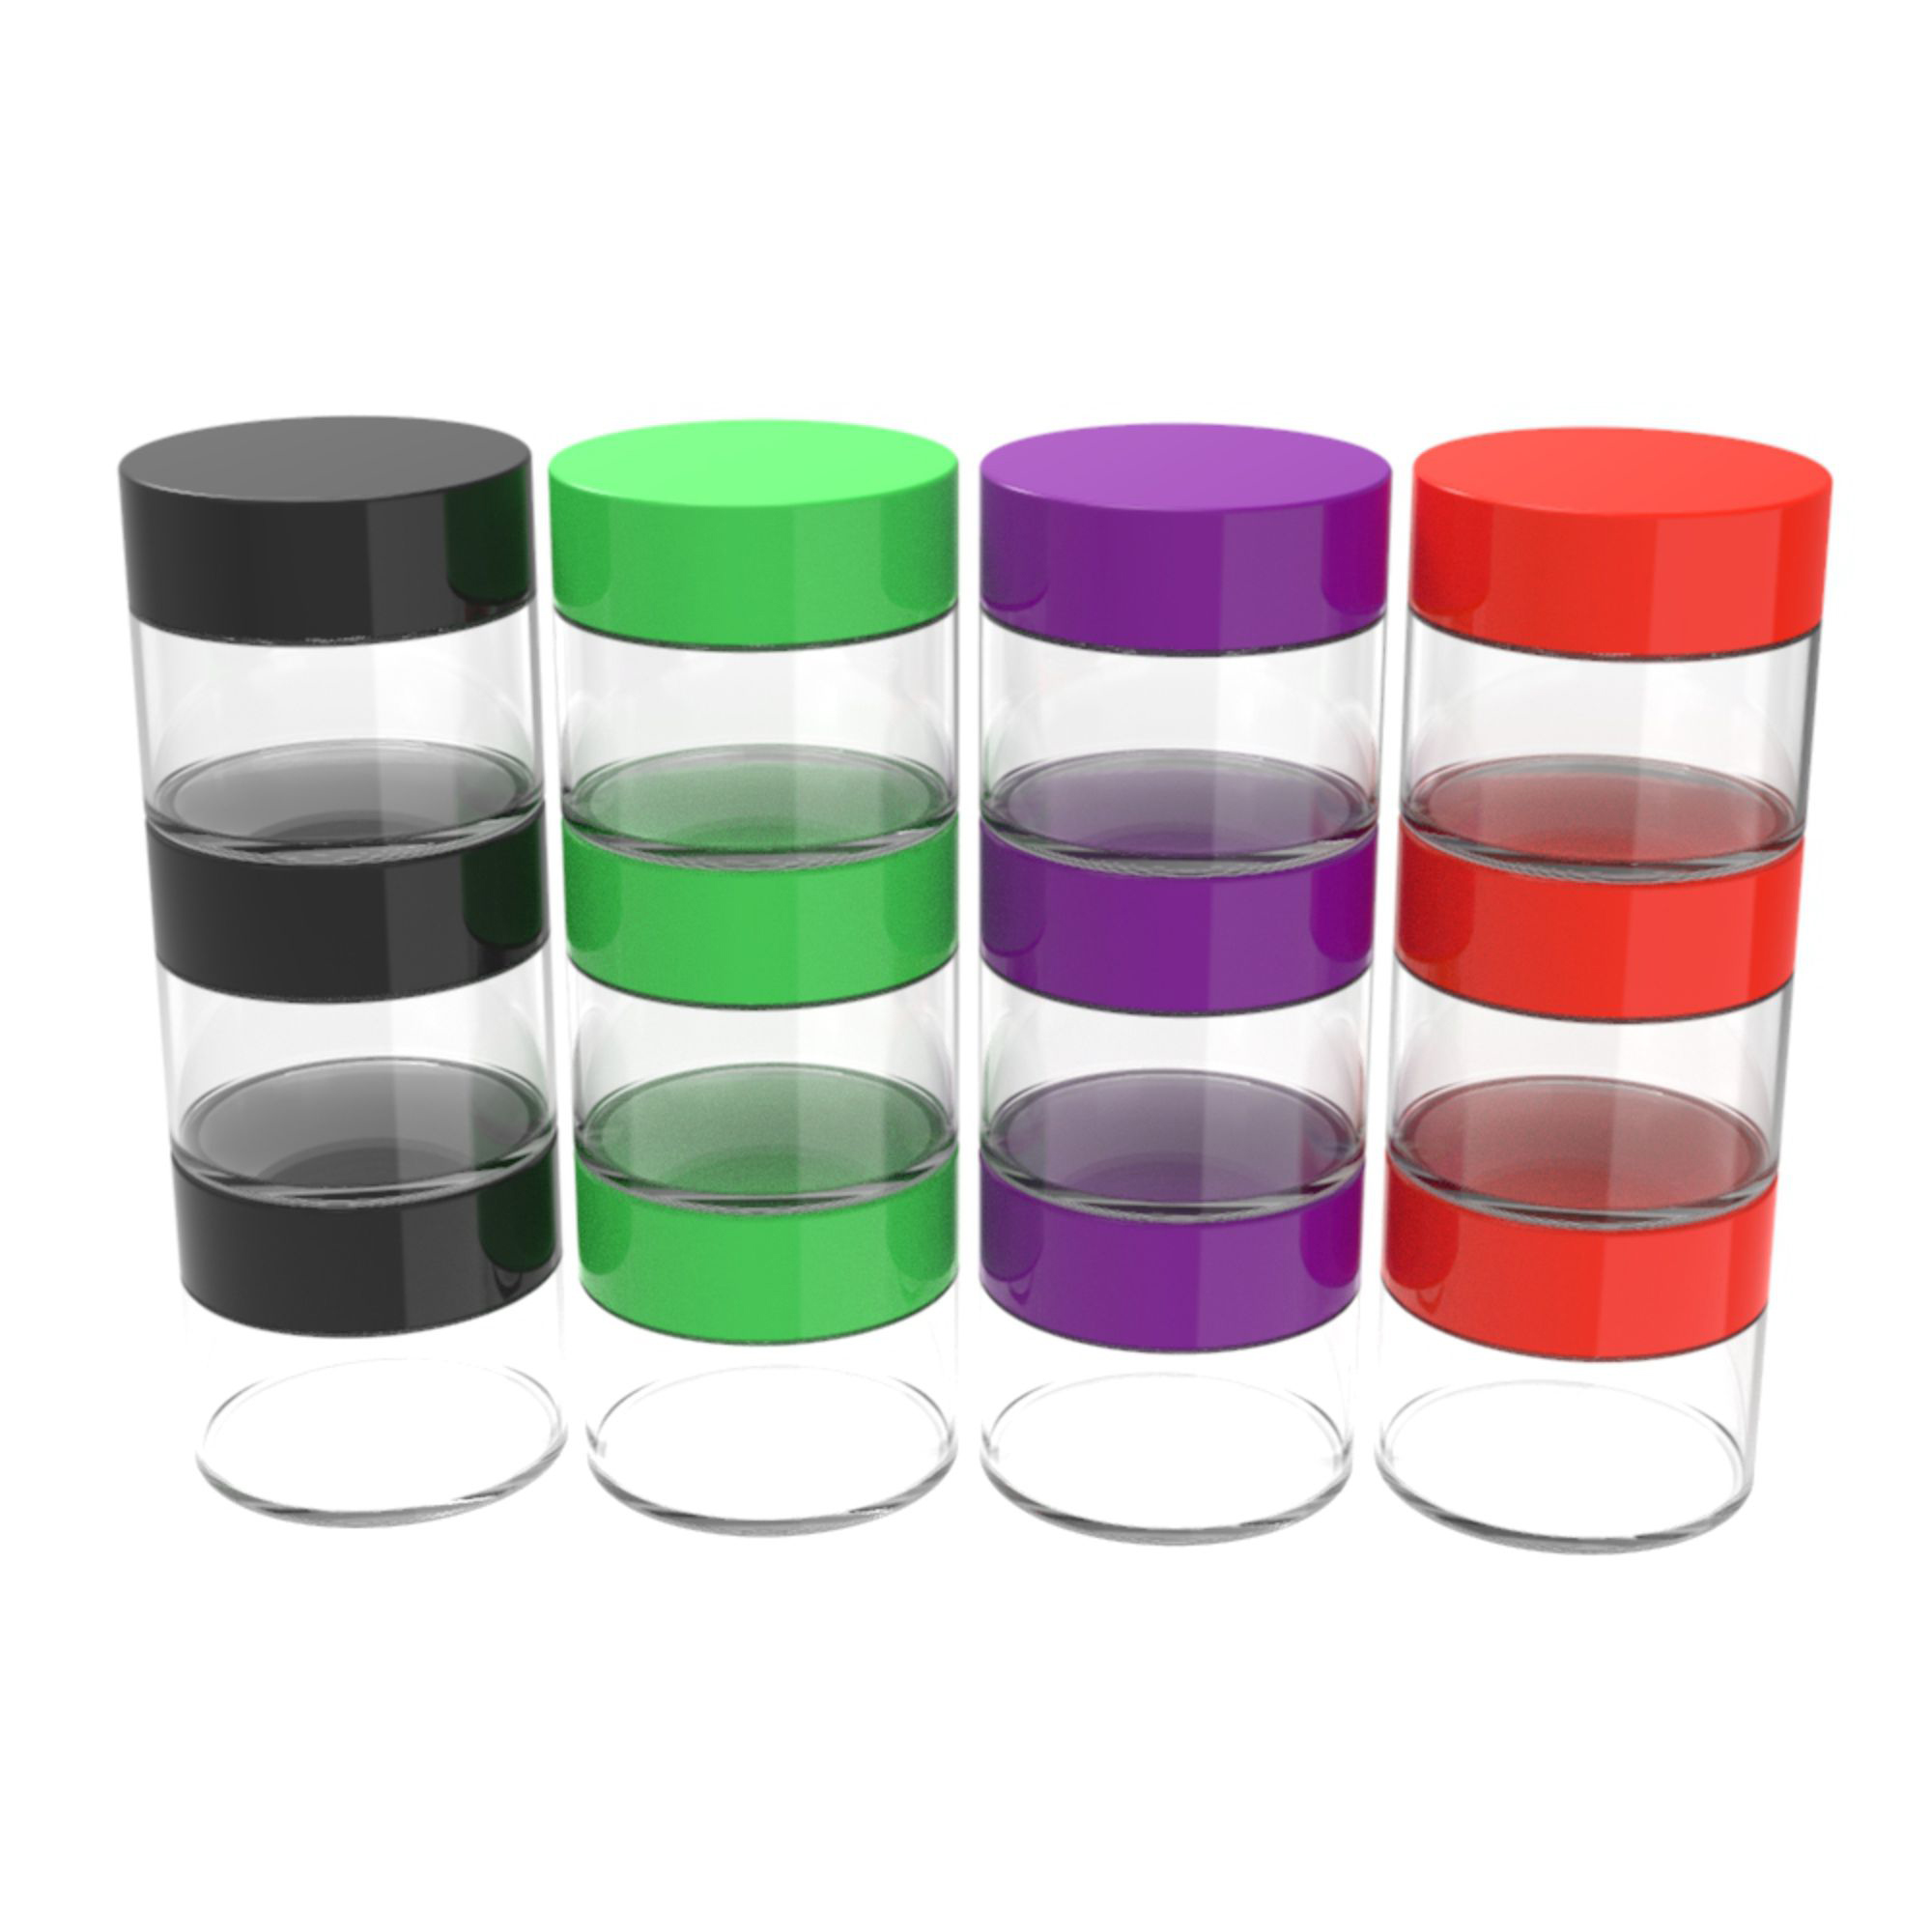 Stalwart 20ml Clear Storage Jars, Colored Lids, 12-Piece by Trademark Global LLC